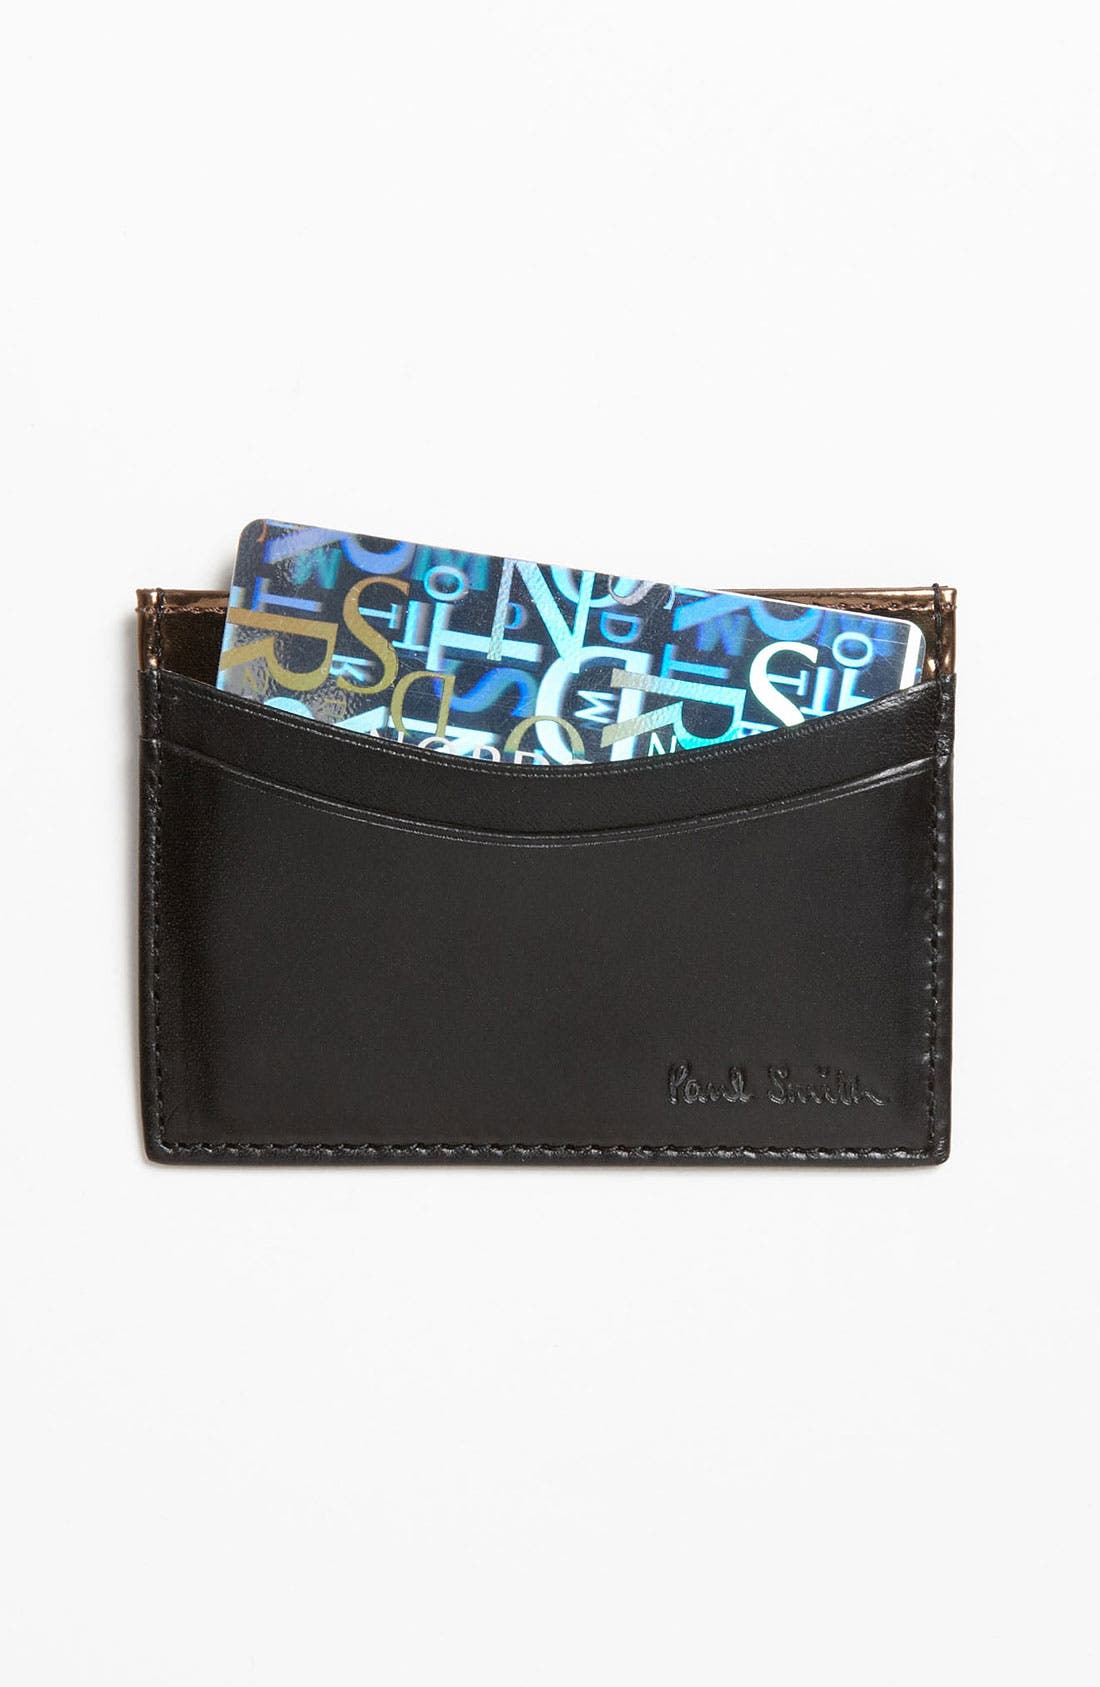 Main Image - Paul Smith Accessories Calfskin Leather Credit Card Case